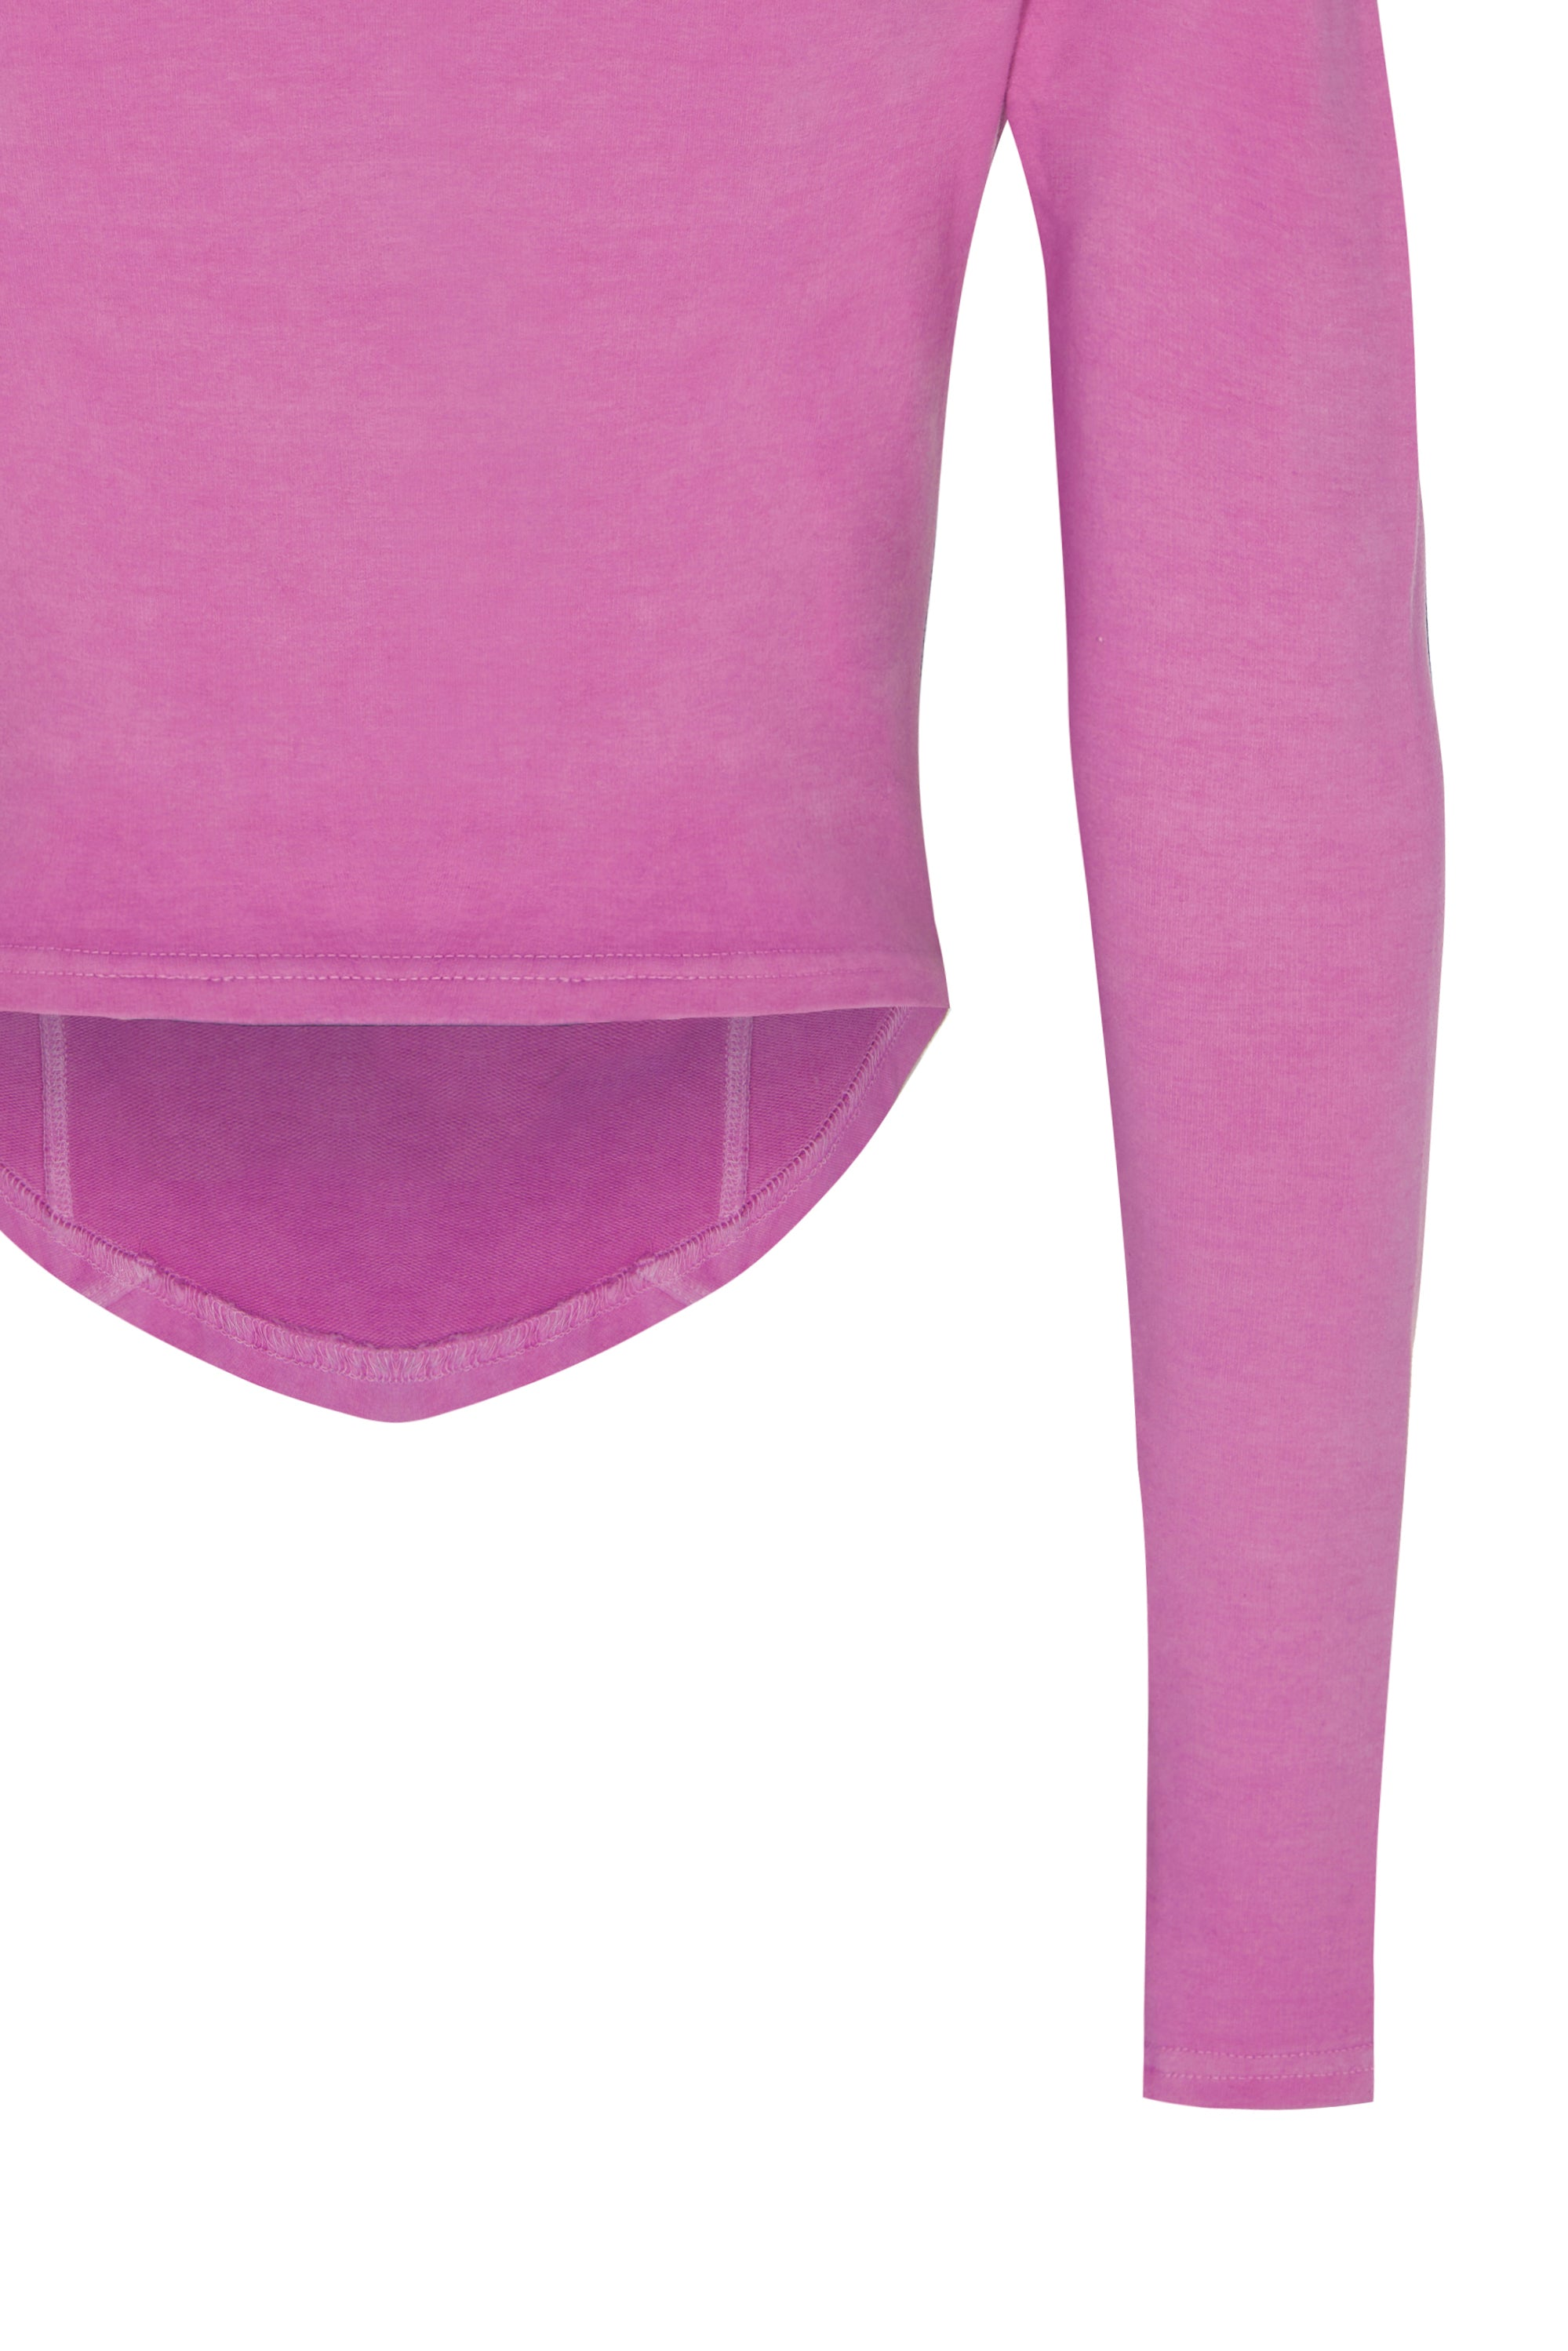 basiK• V-Neck Corset Top in Pansy Pink